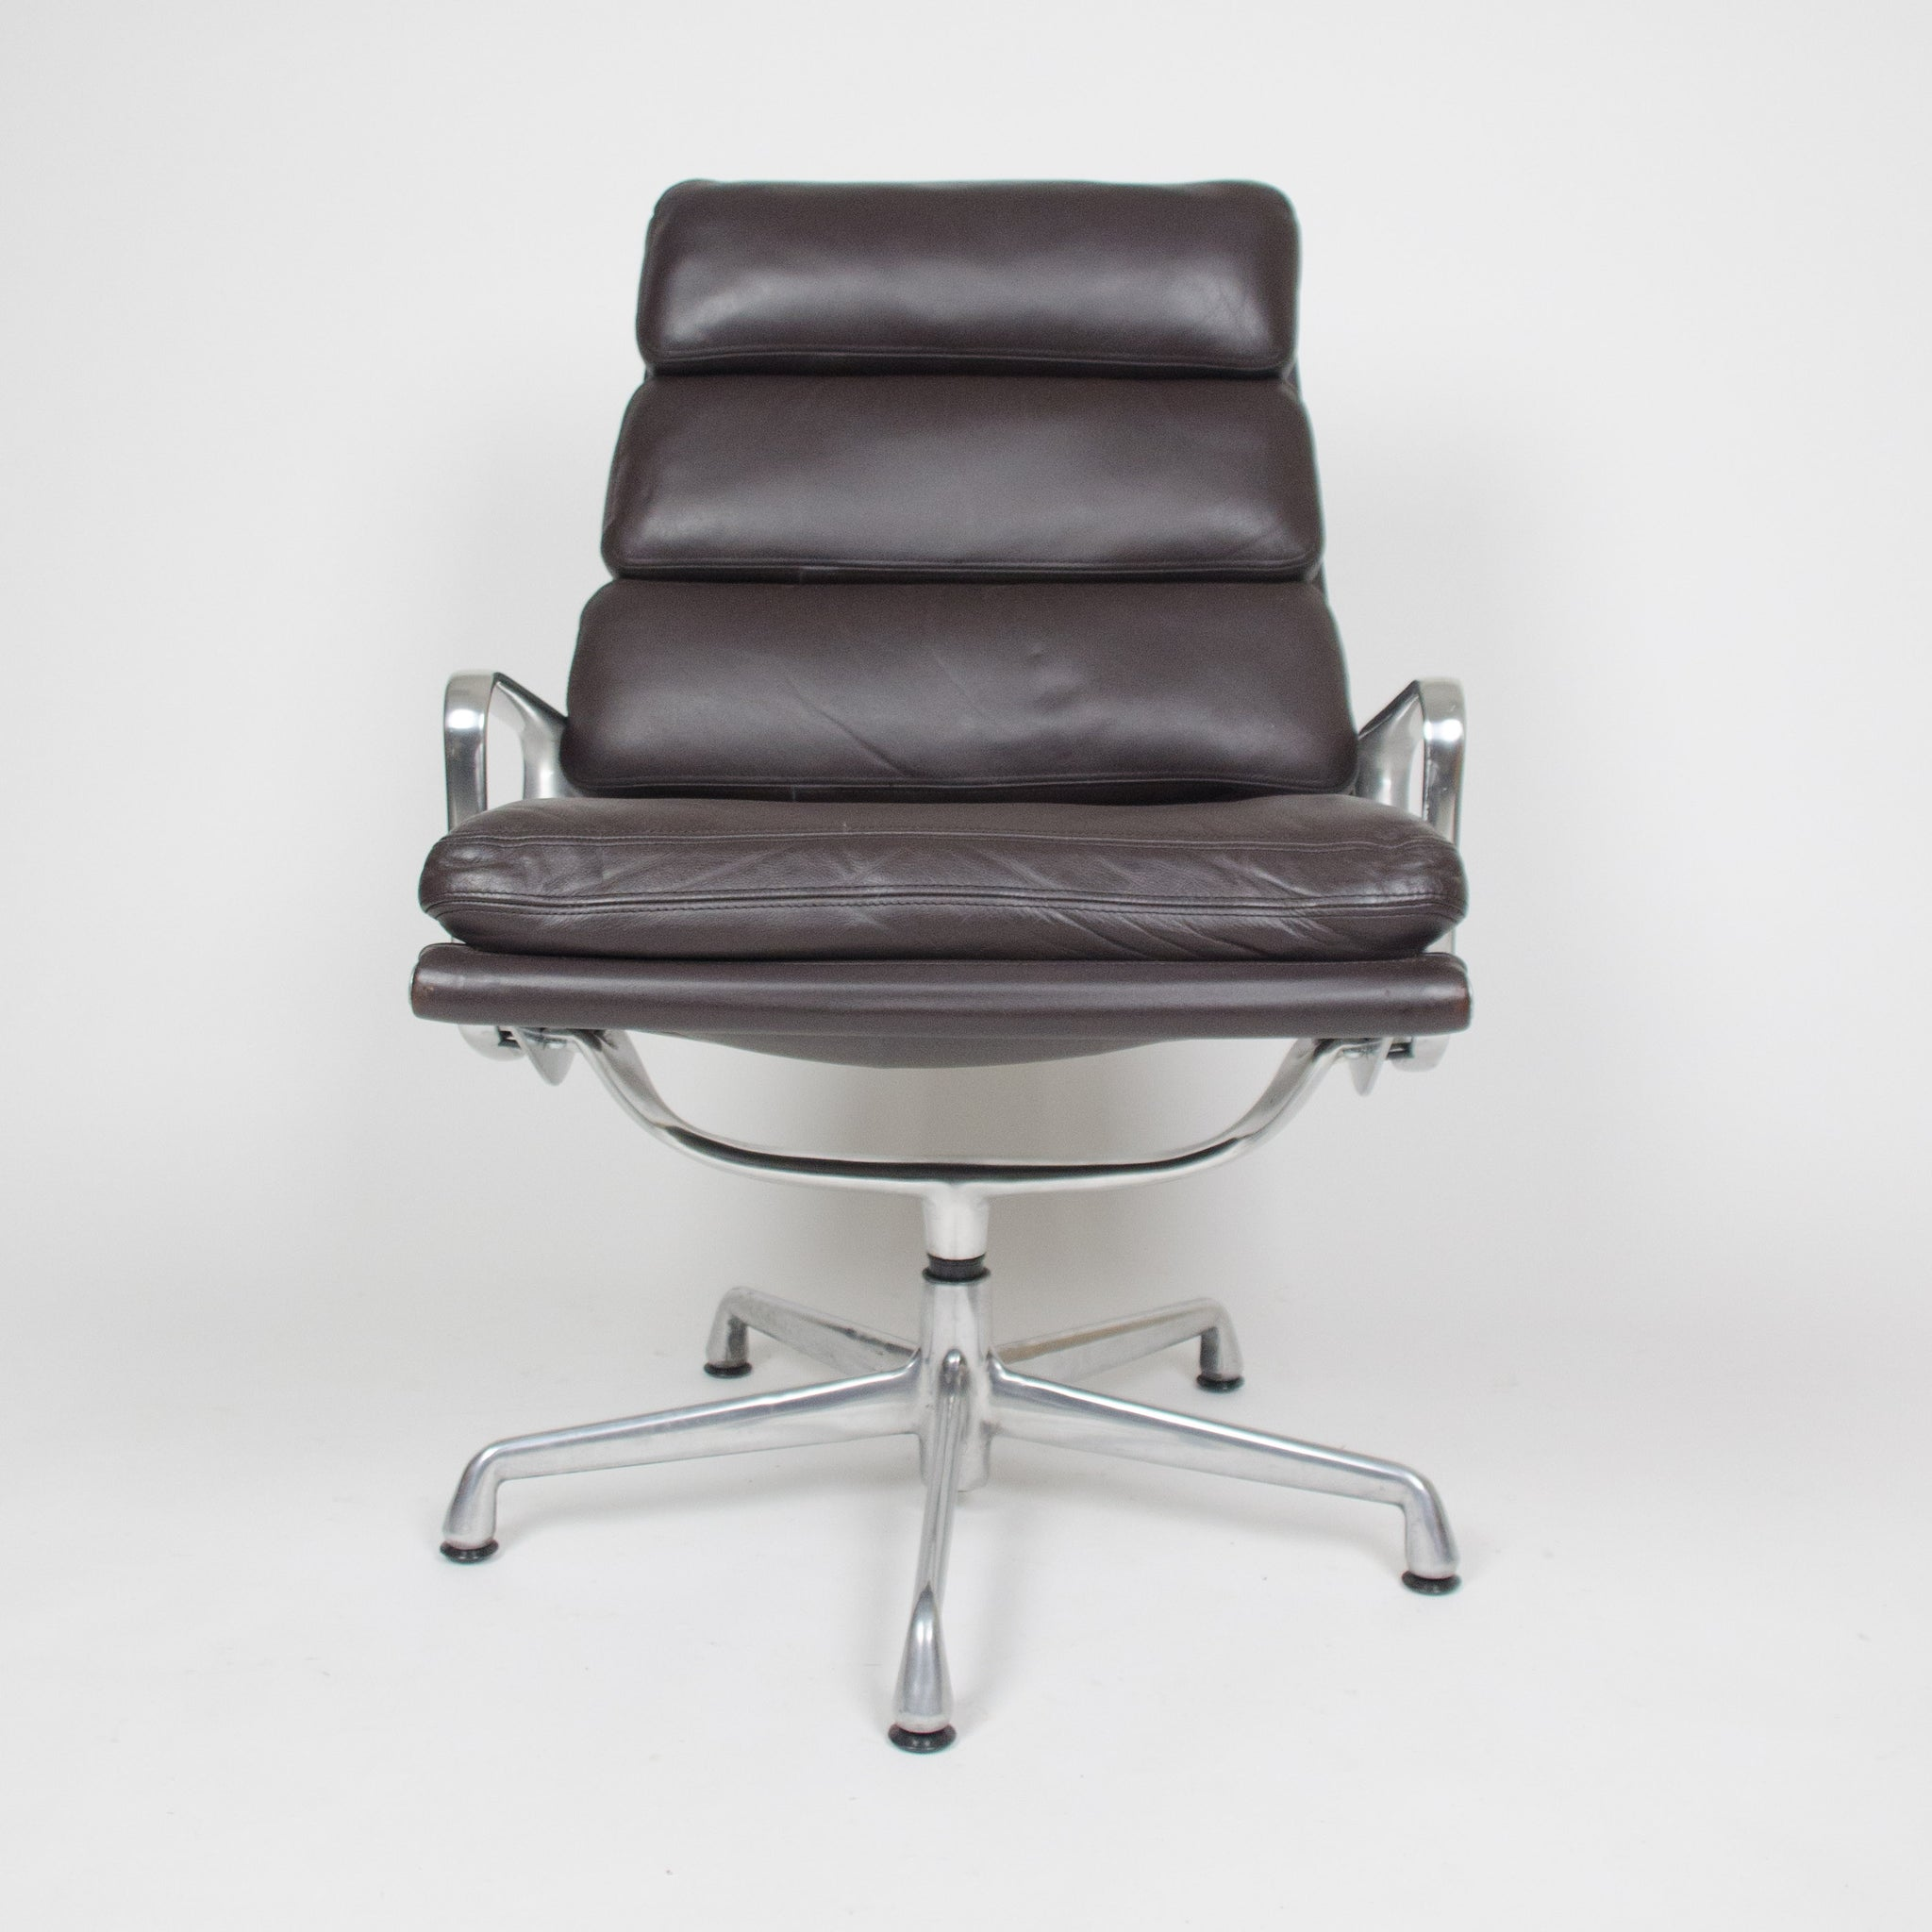 SOLD Eames Herman Miller Soft Pad Aluminum Group Lounge Chair Brown Leather